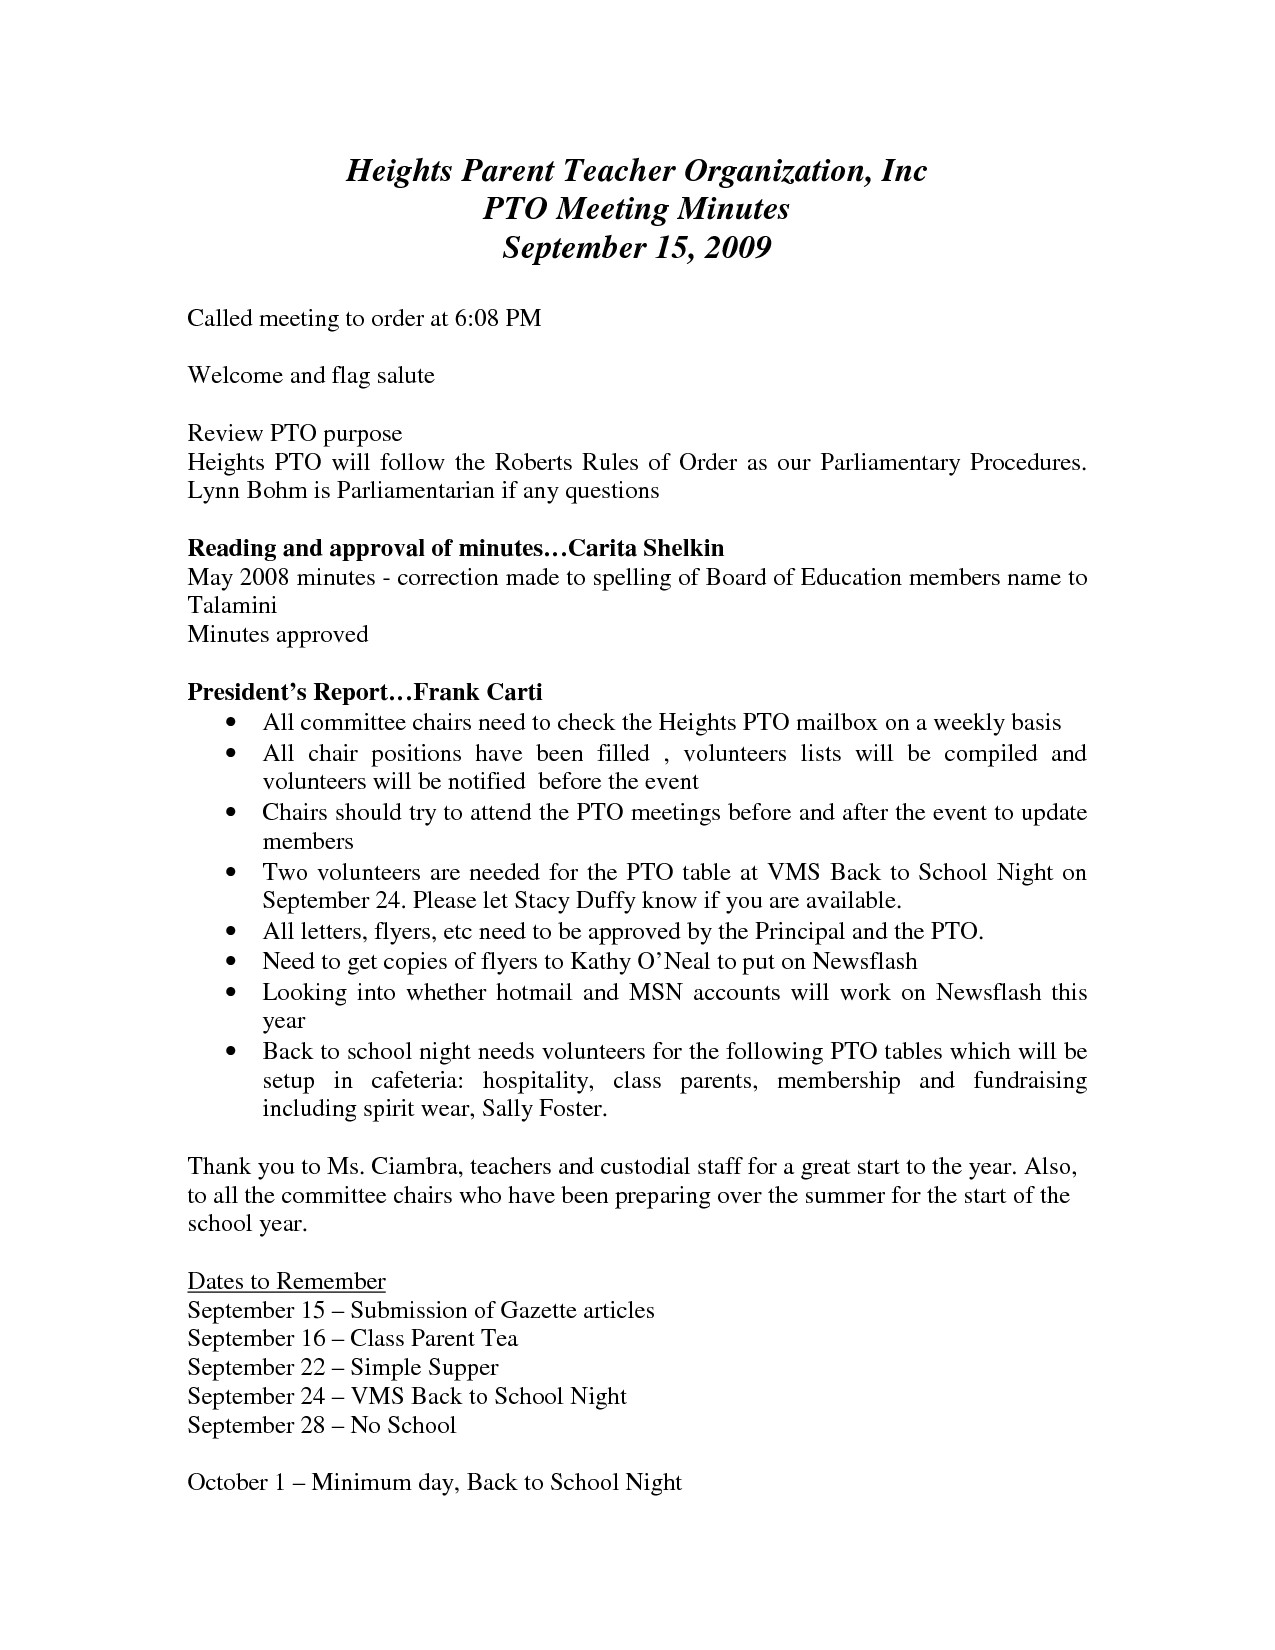 Pto Meeting Minutes Template Pto Minutes Template